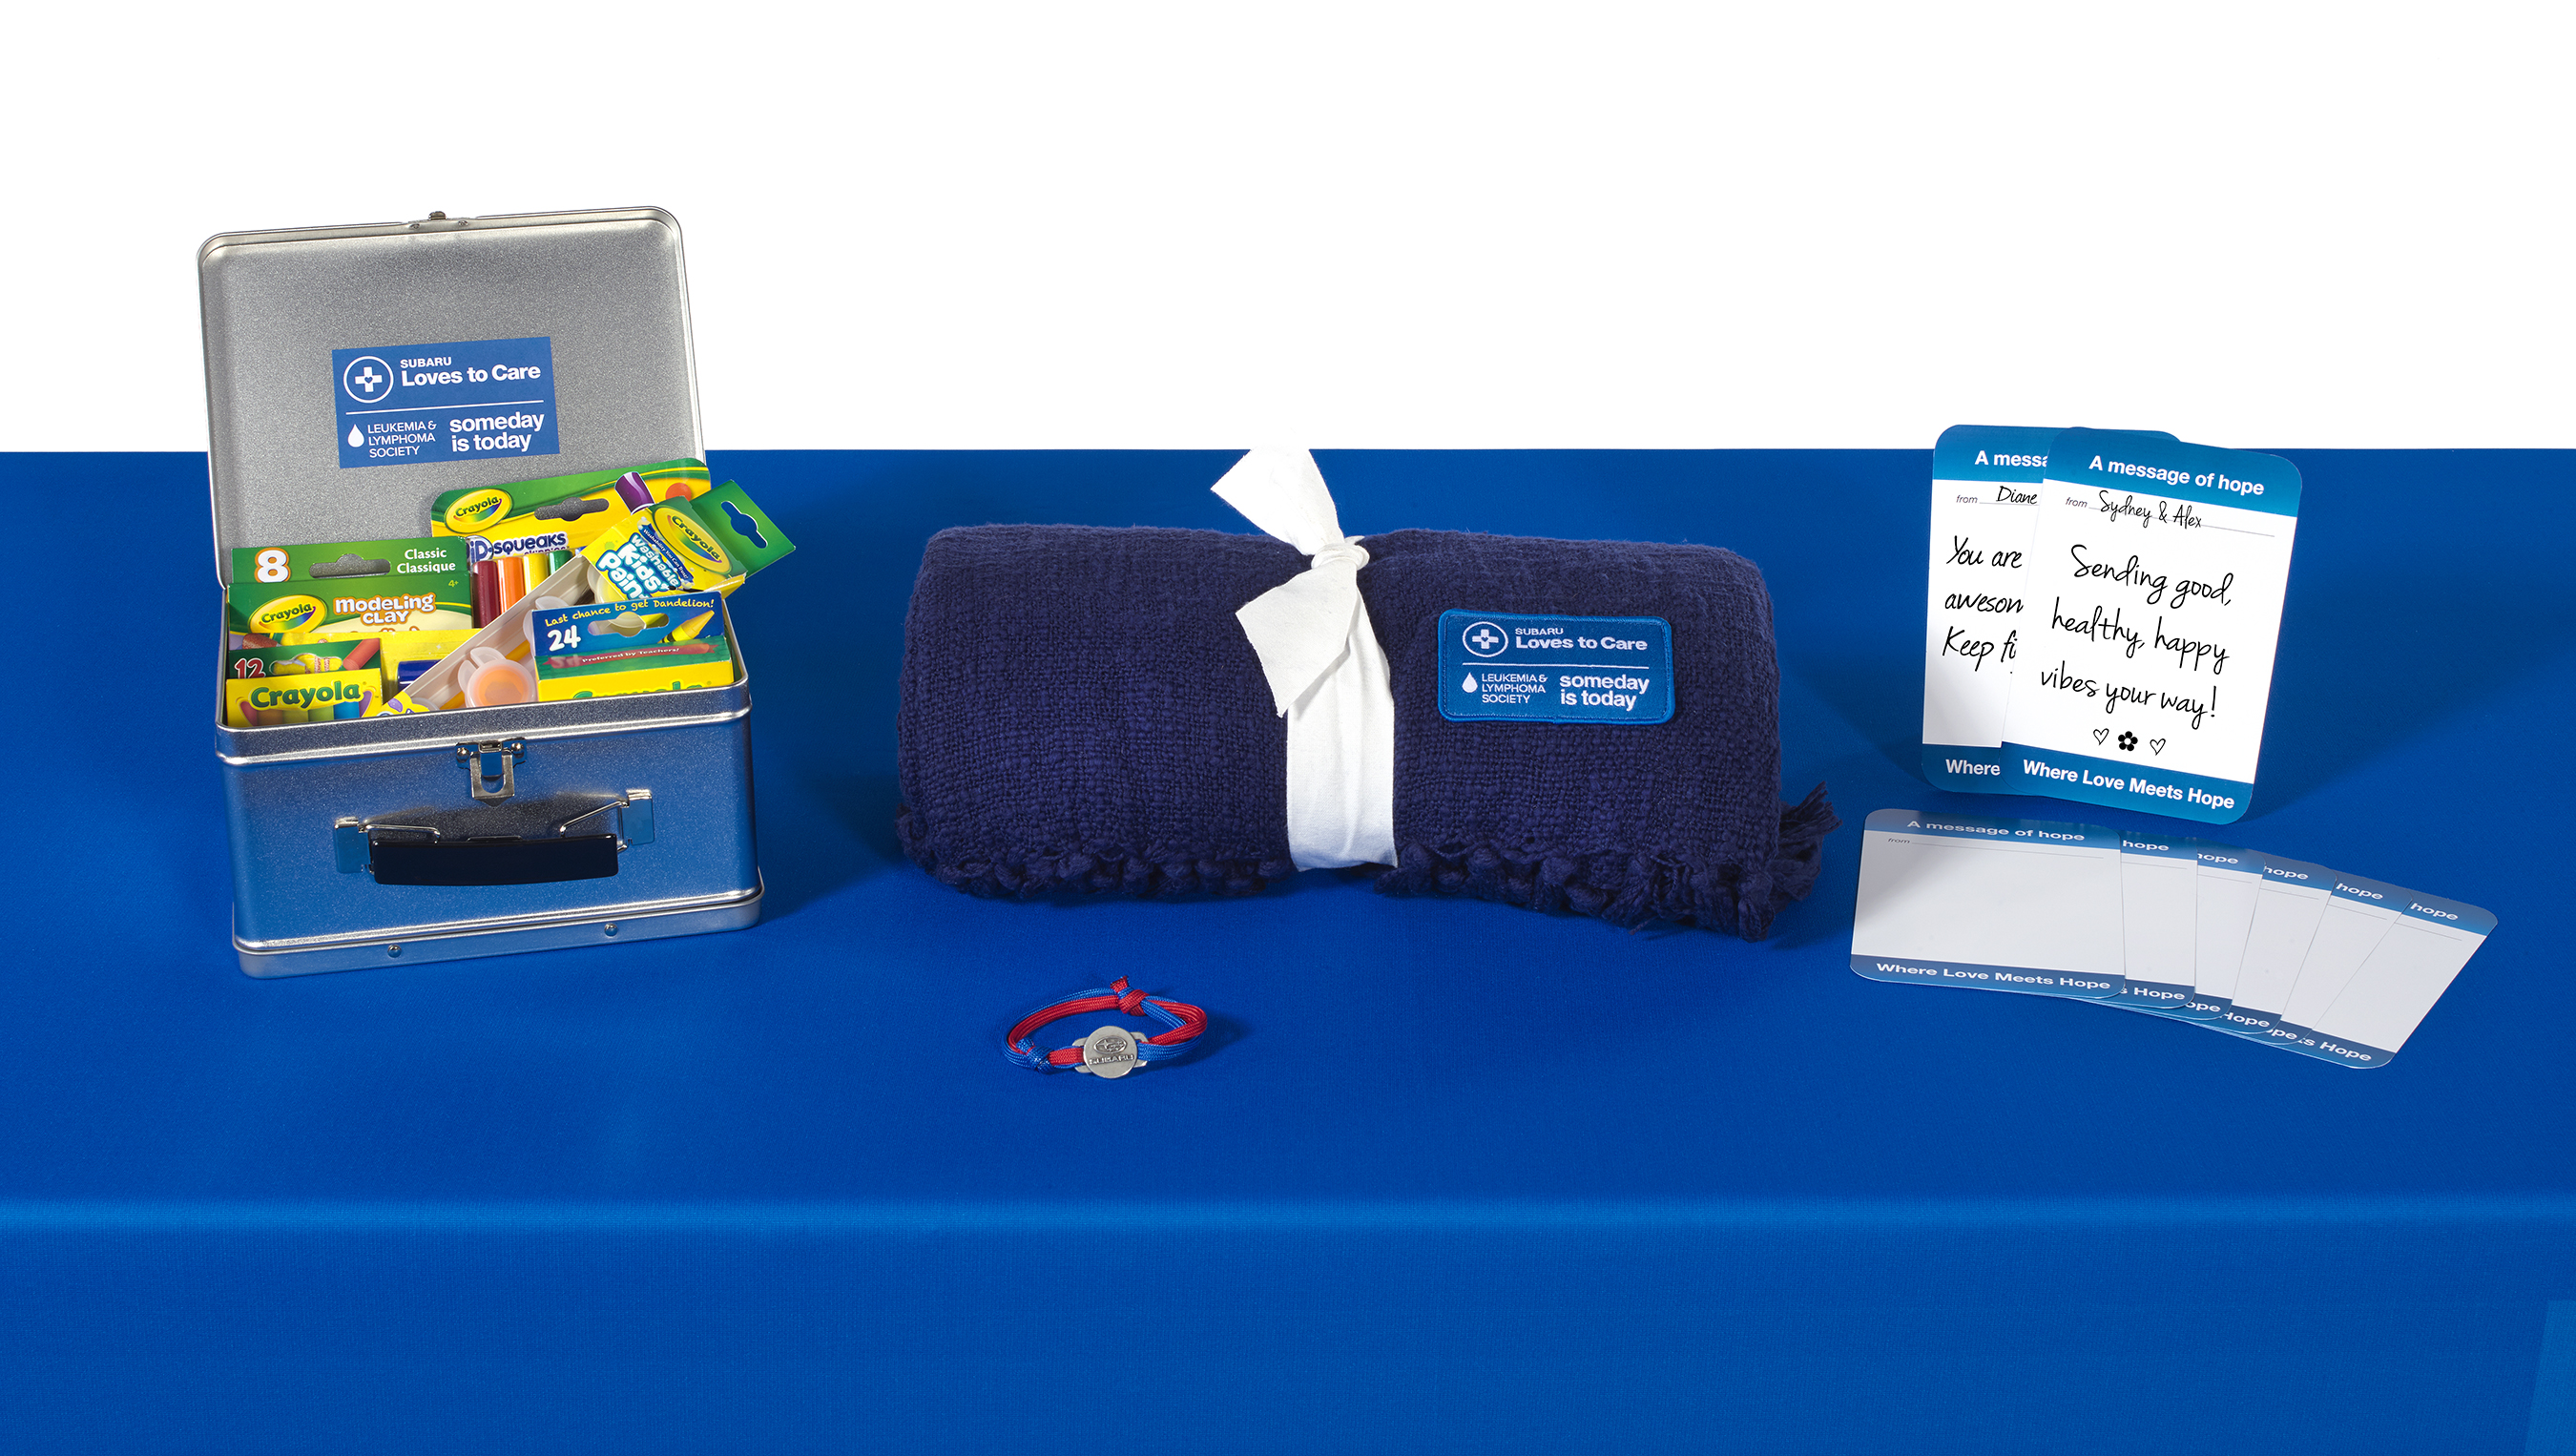 In June, LLS and participating Subaru retailers will provide blankets, messages of hope, and arts and crafts kits to cancer patients across the U.S.